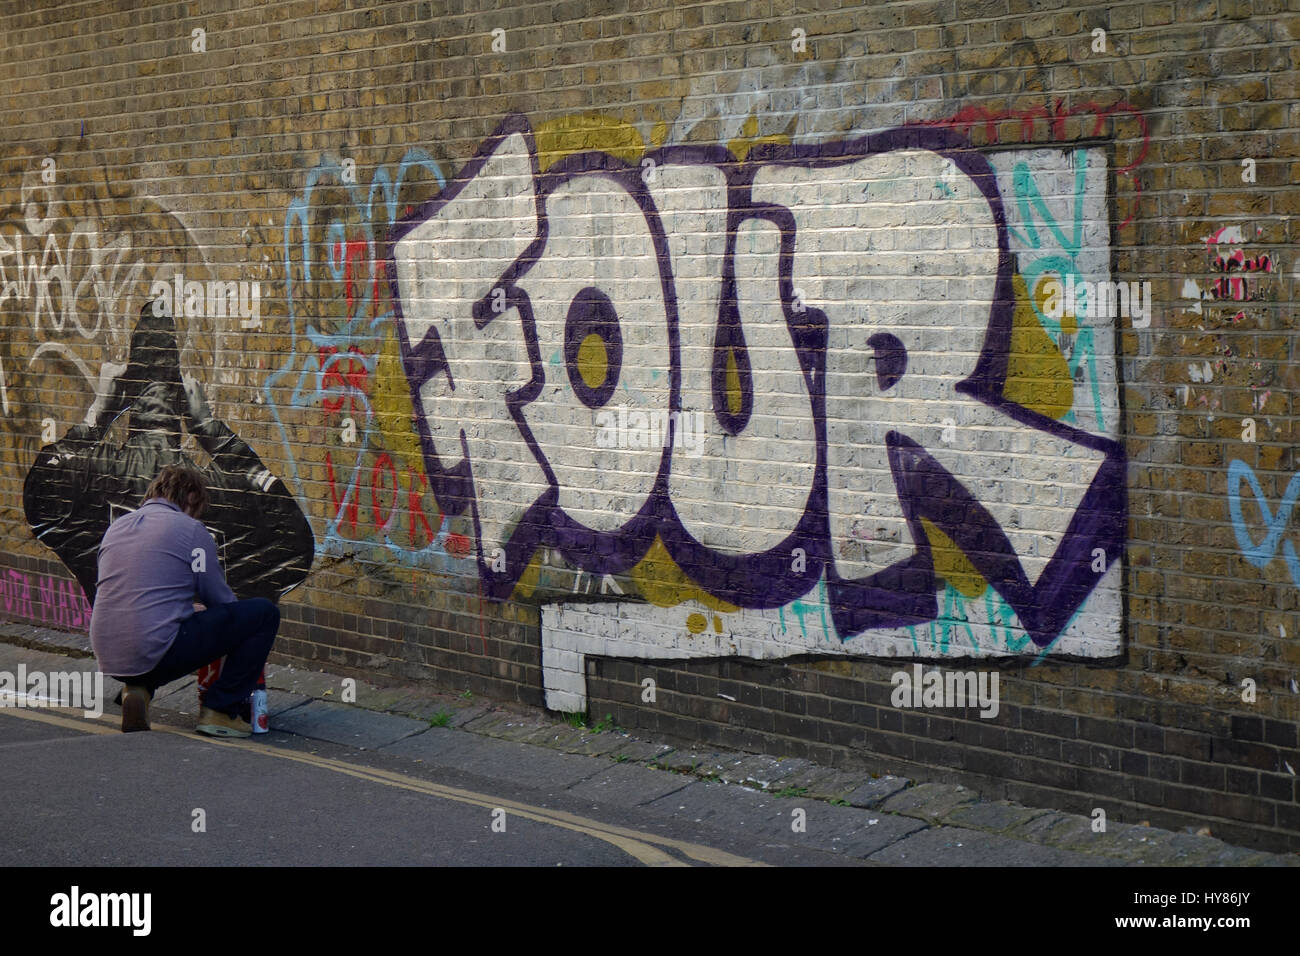 Graffiti and street art in brick lane east london uk stock image